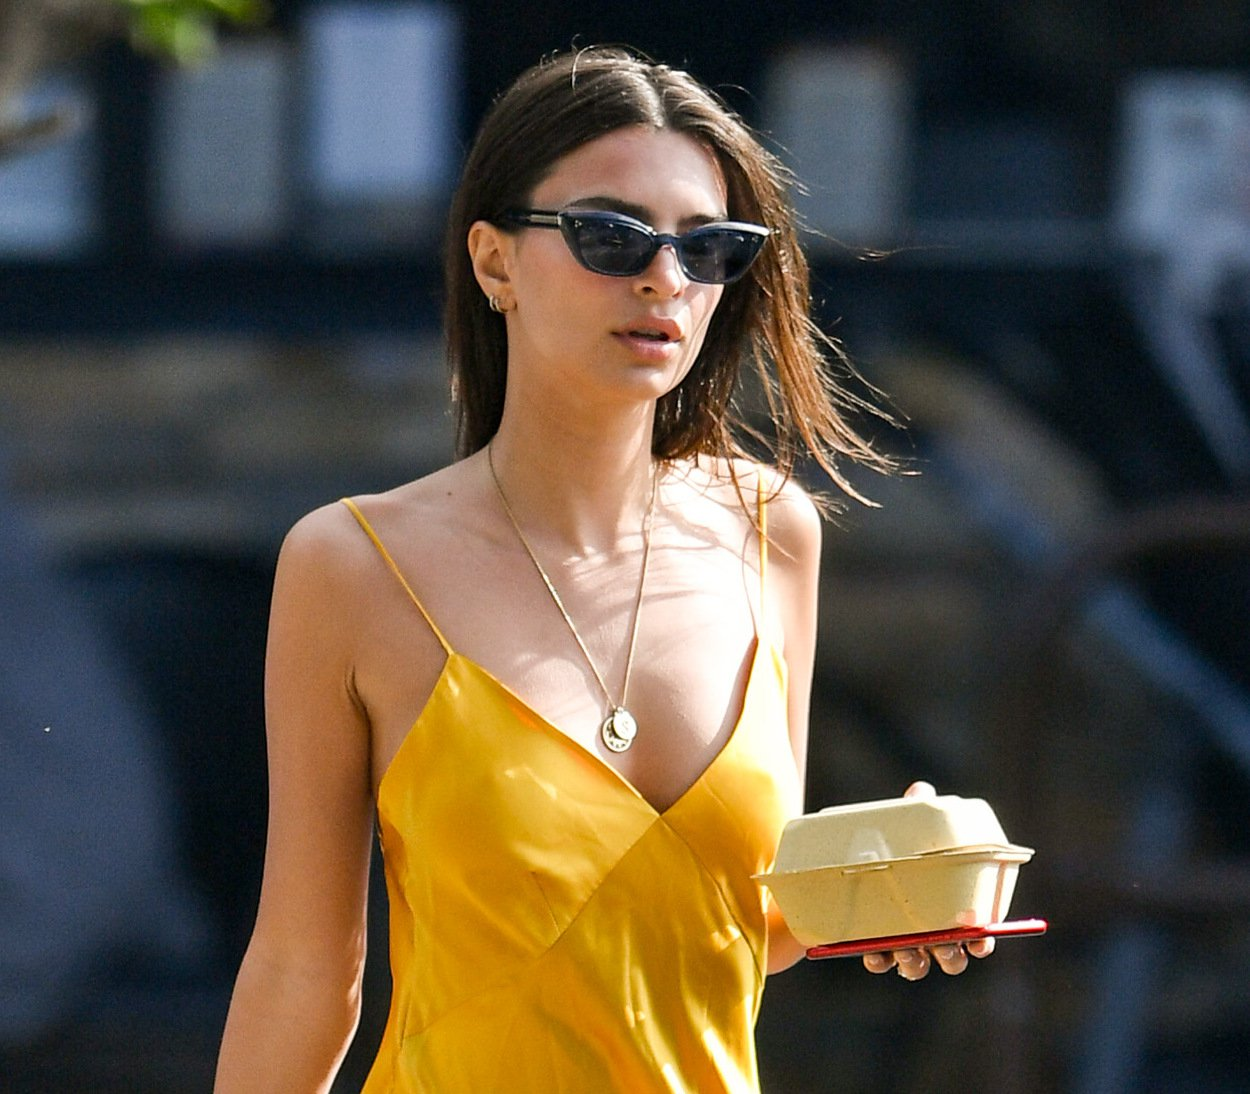 Emily Ratajkowski – Braless Candids in Los Angeles